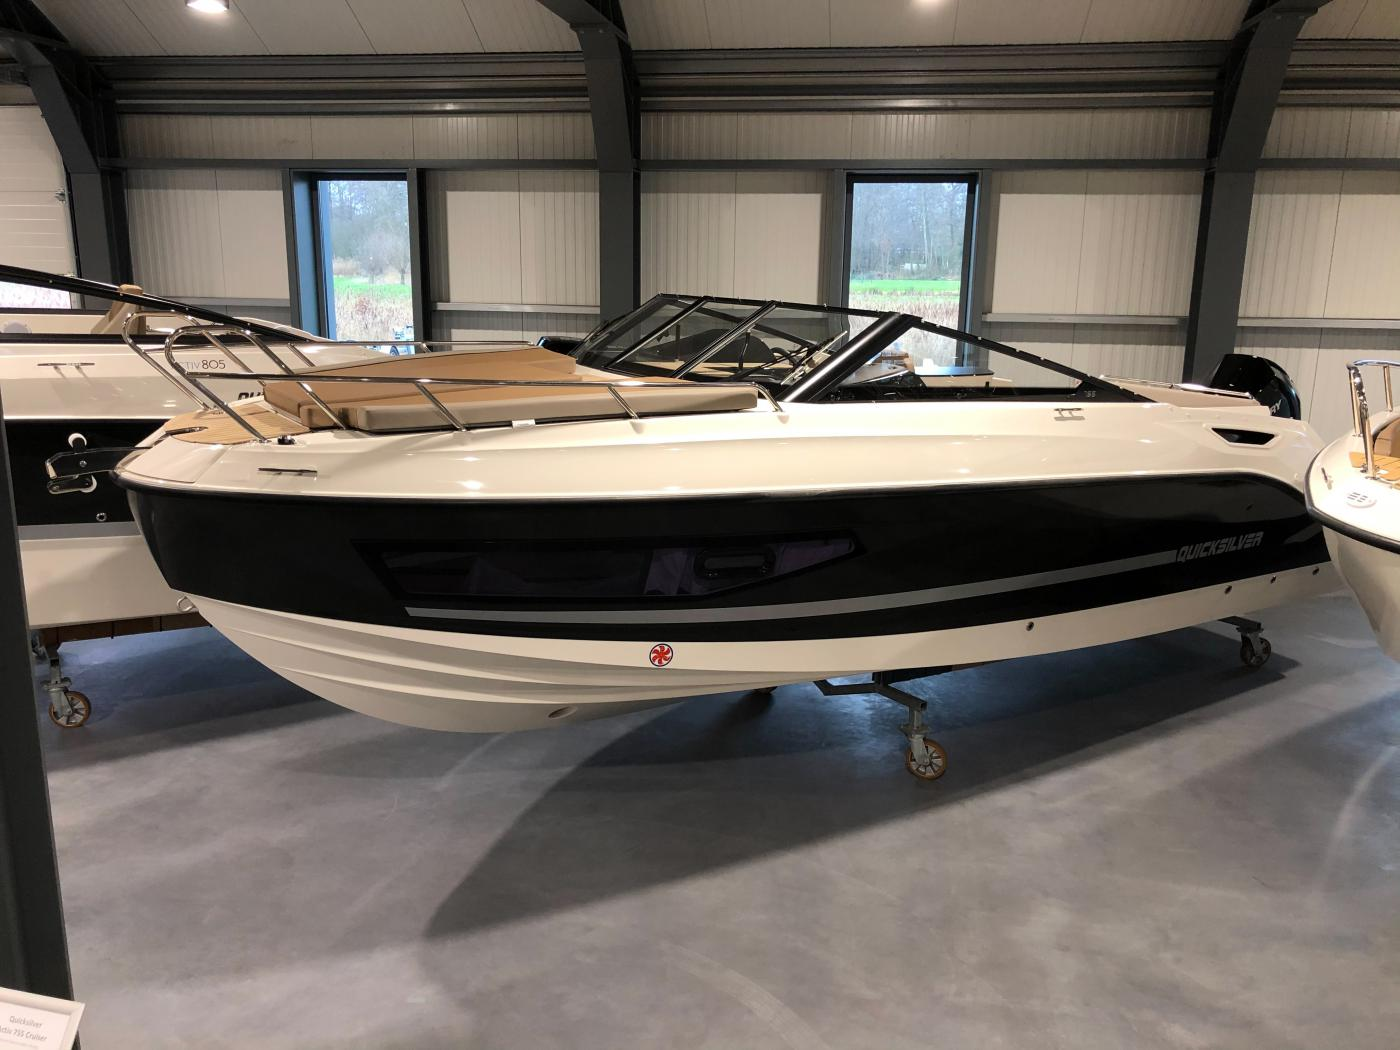 Te koop Quicksilver 755 Cruiser Sportcruisers | Bomert Watersport